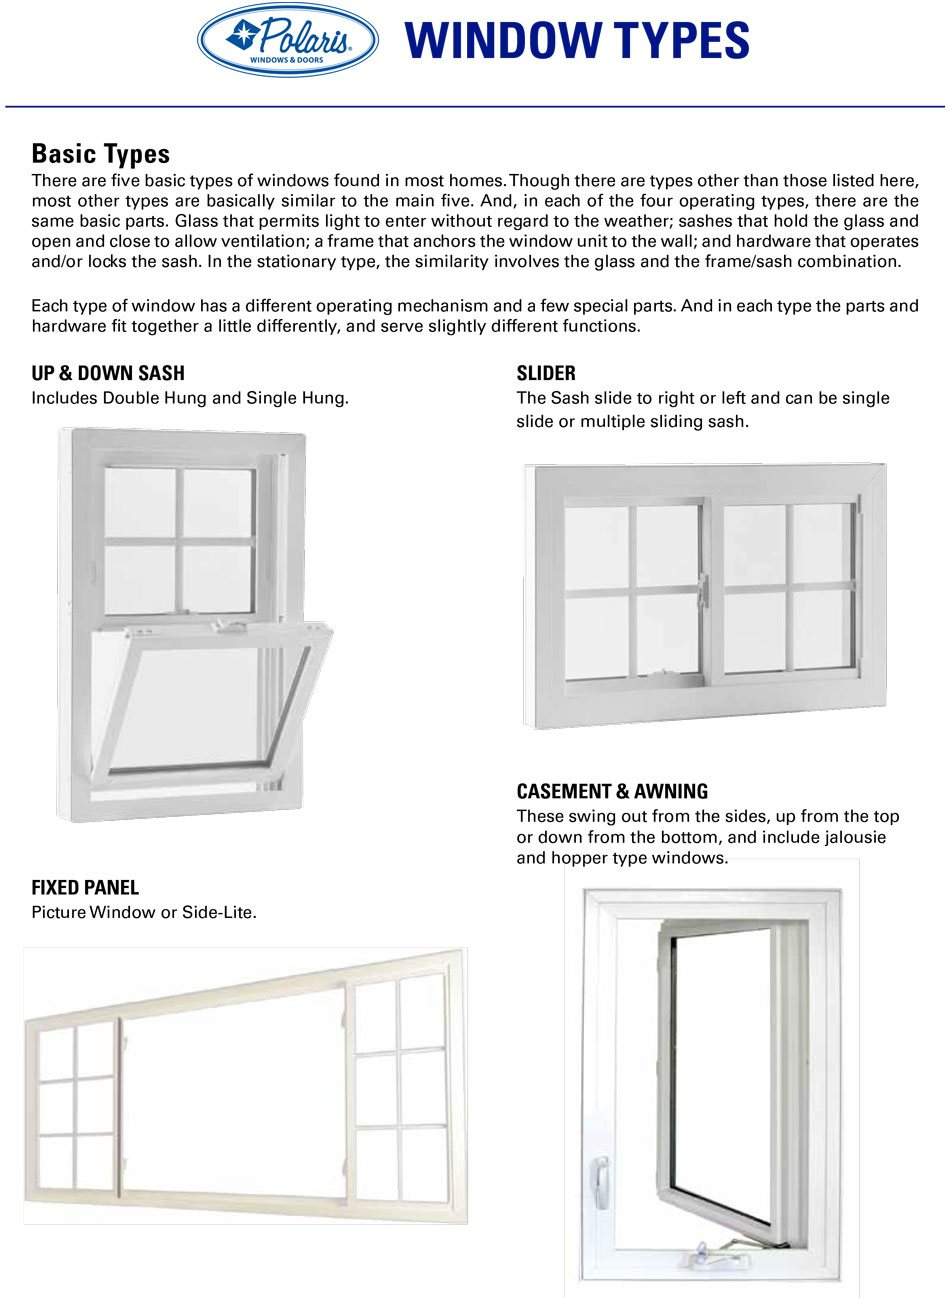 Polaris Window Types Up and Down Sash, Slider, Fixed Panel, Casement and awning